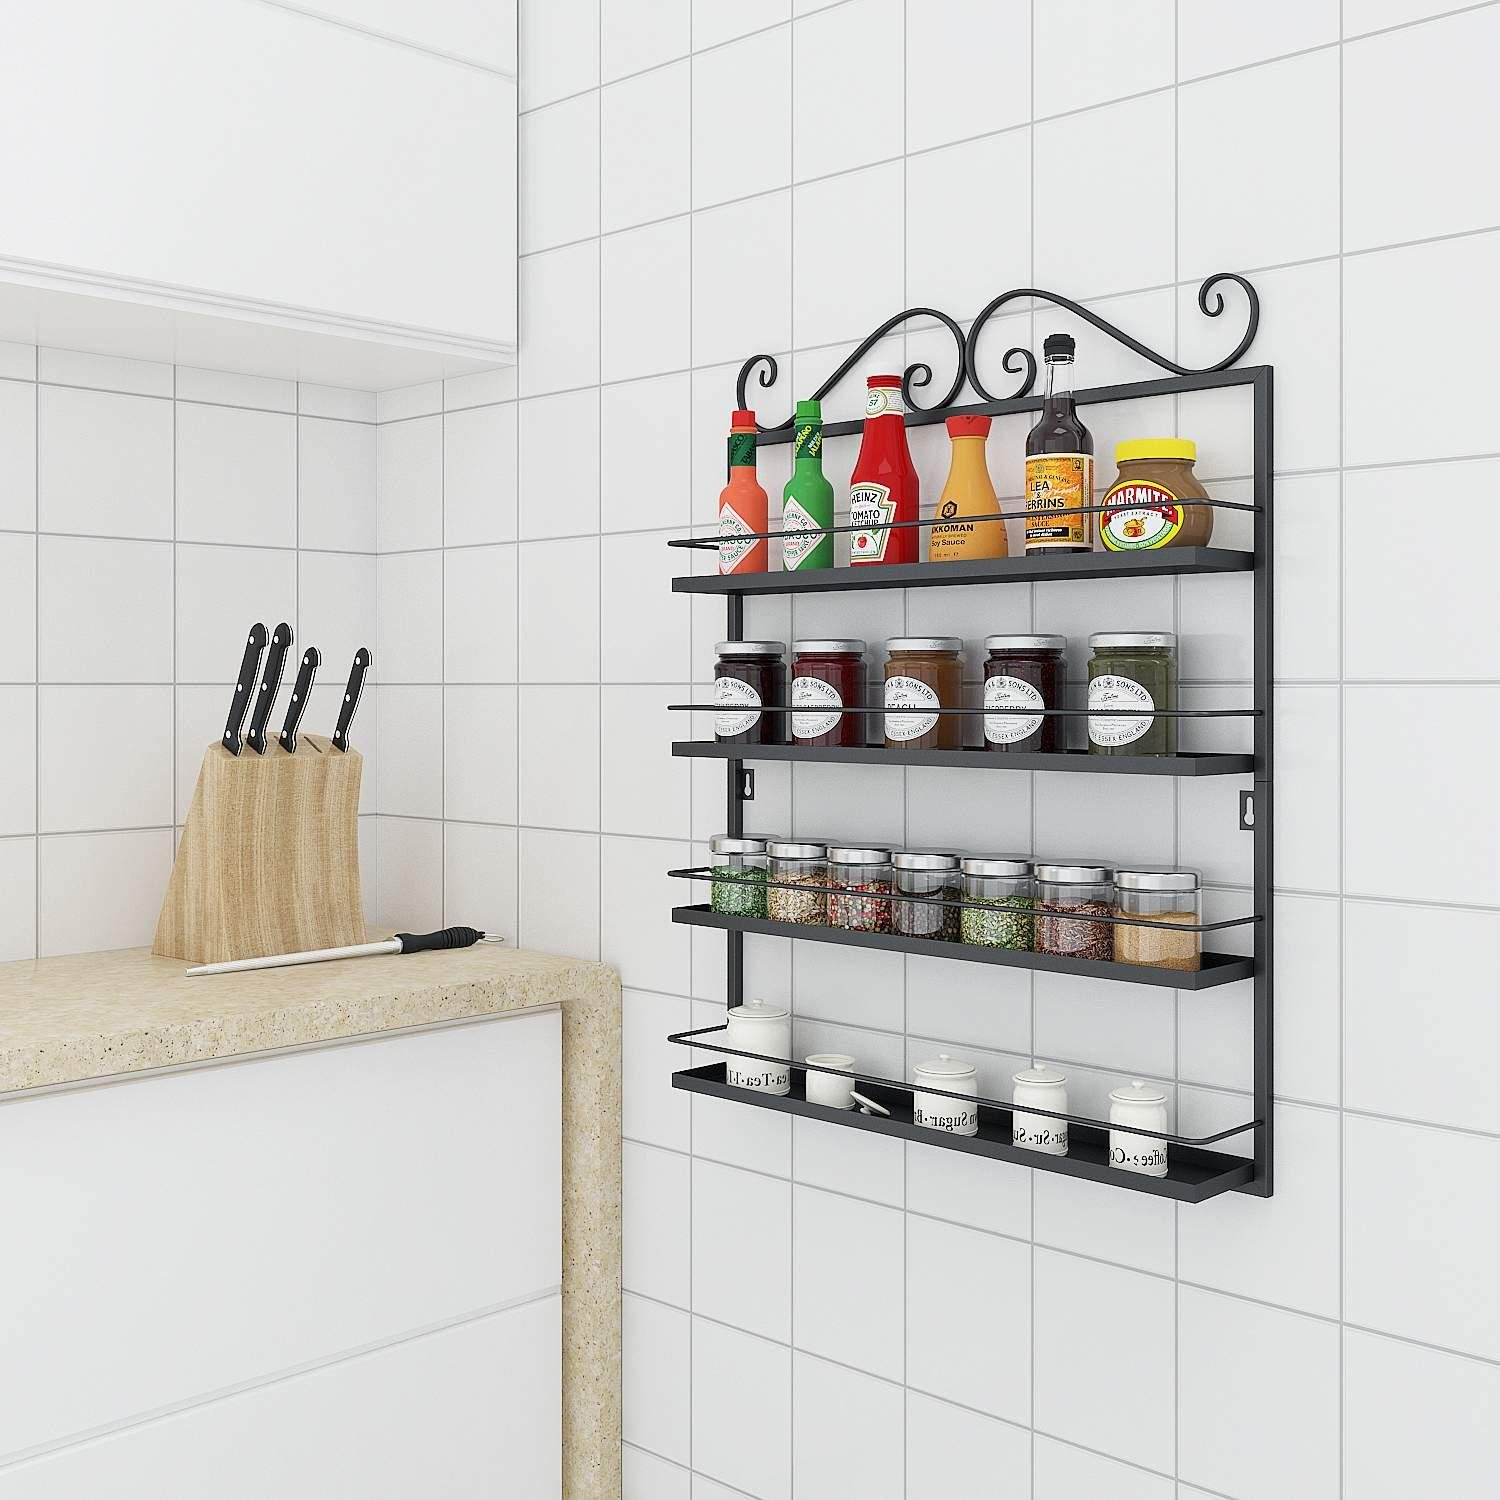 Corgy Kitchen Condiments Storage Shelves Durable Multifunctional Metal 4 Shelf Tie Racks Organizers by Corgy